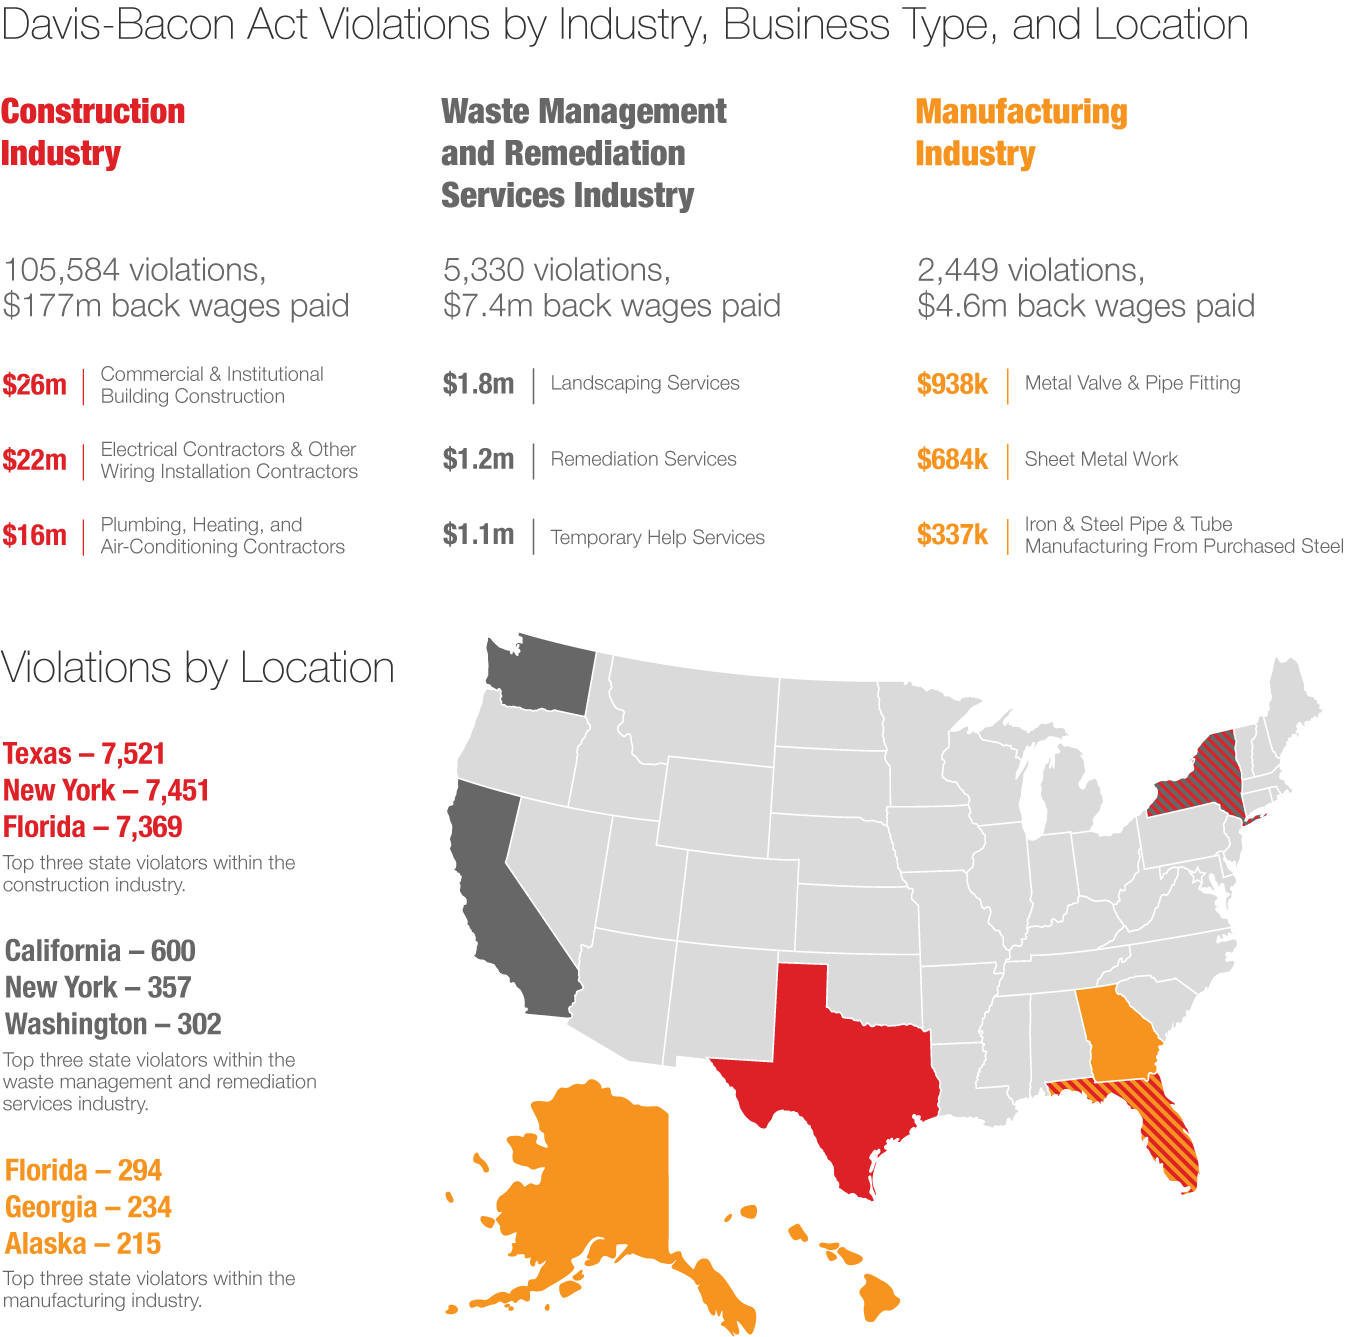 Davis-Bacon Act violations listed by industry, location, and business type infographic.